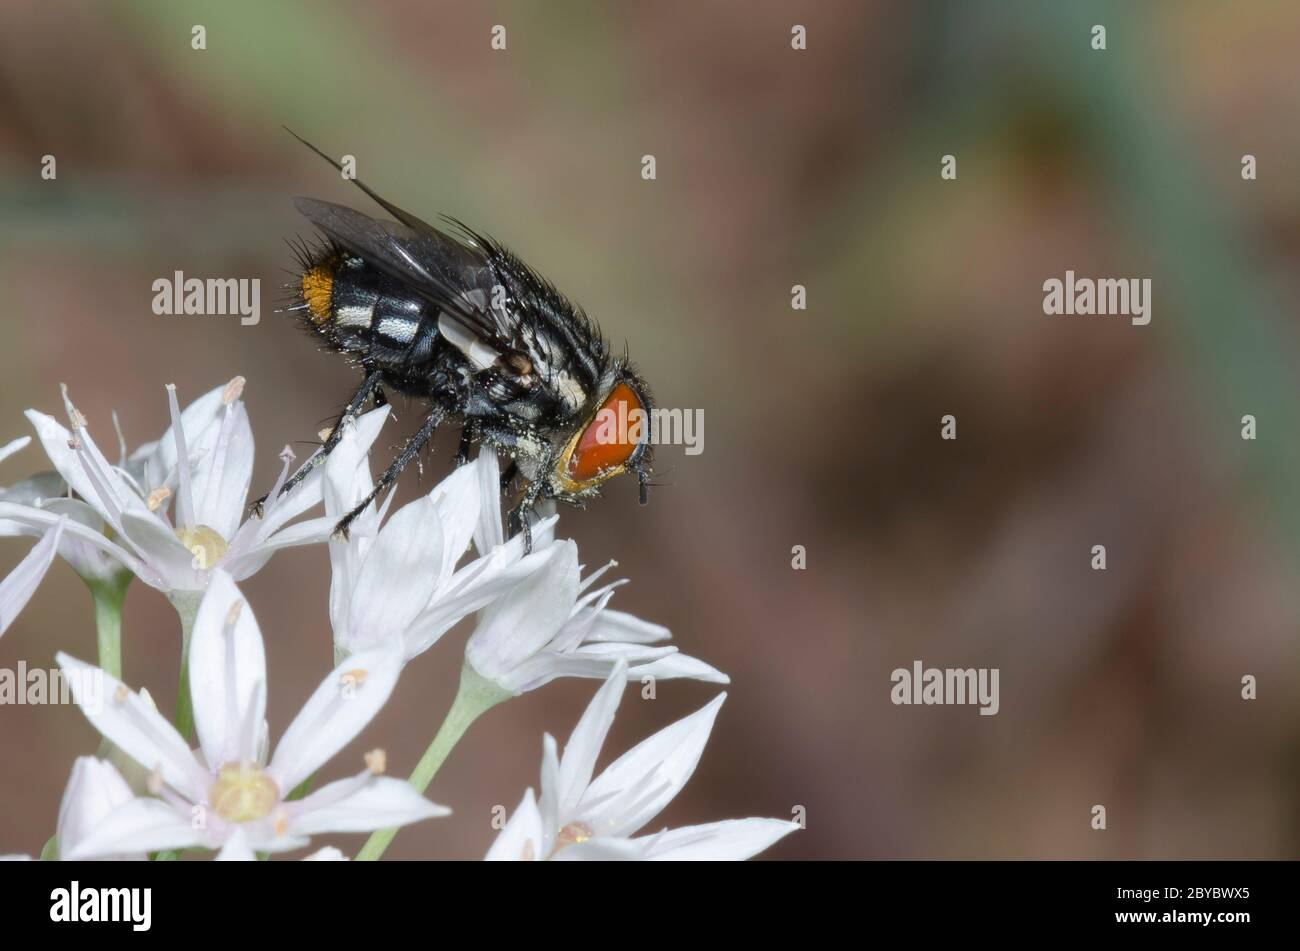 Tachinid Fly, Atacta brasiliensis, male foraging on Meadow Garlic, Allium canadense Stock Photo